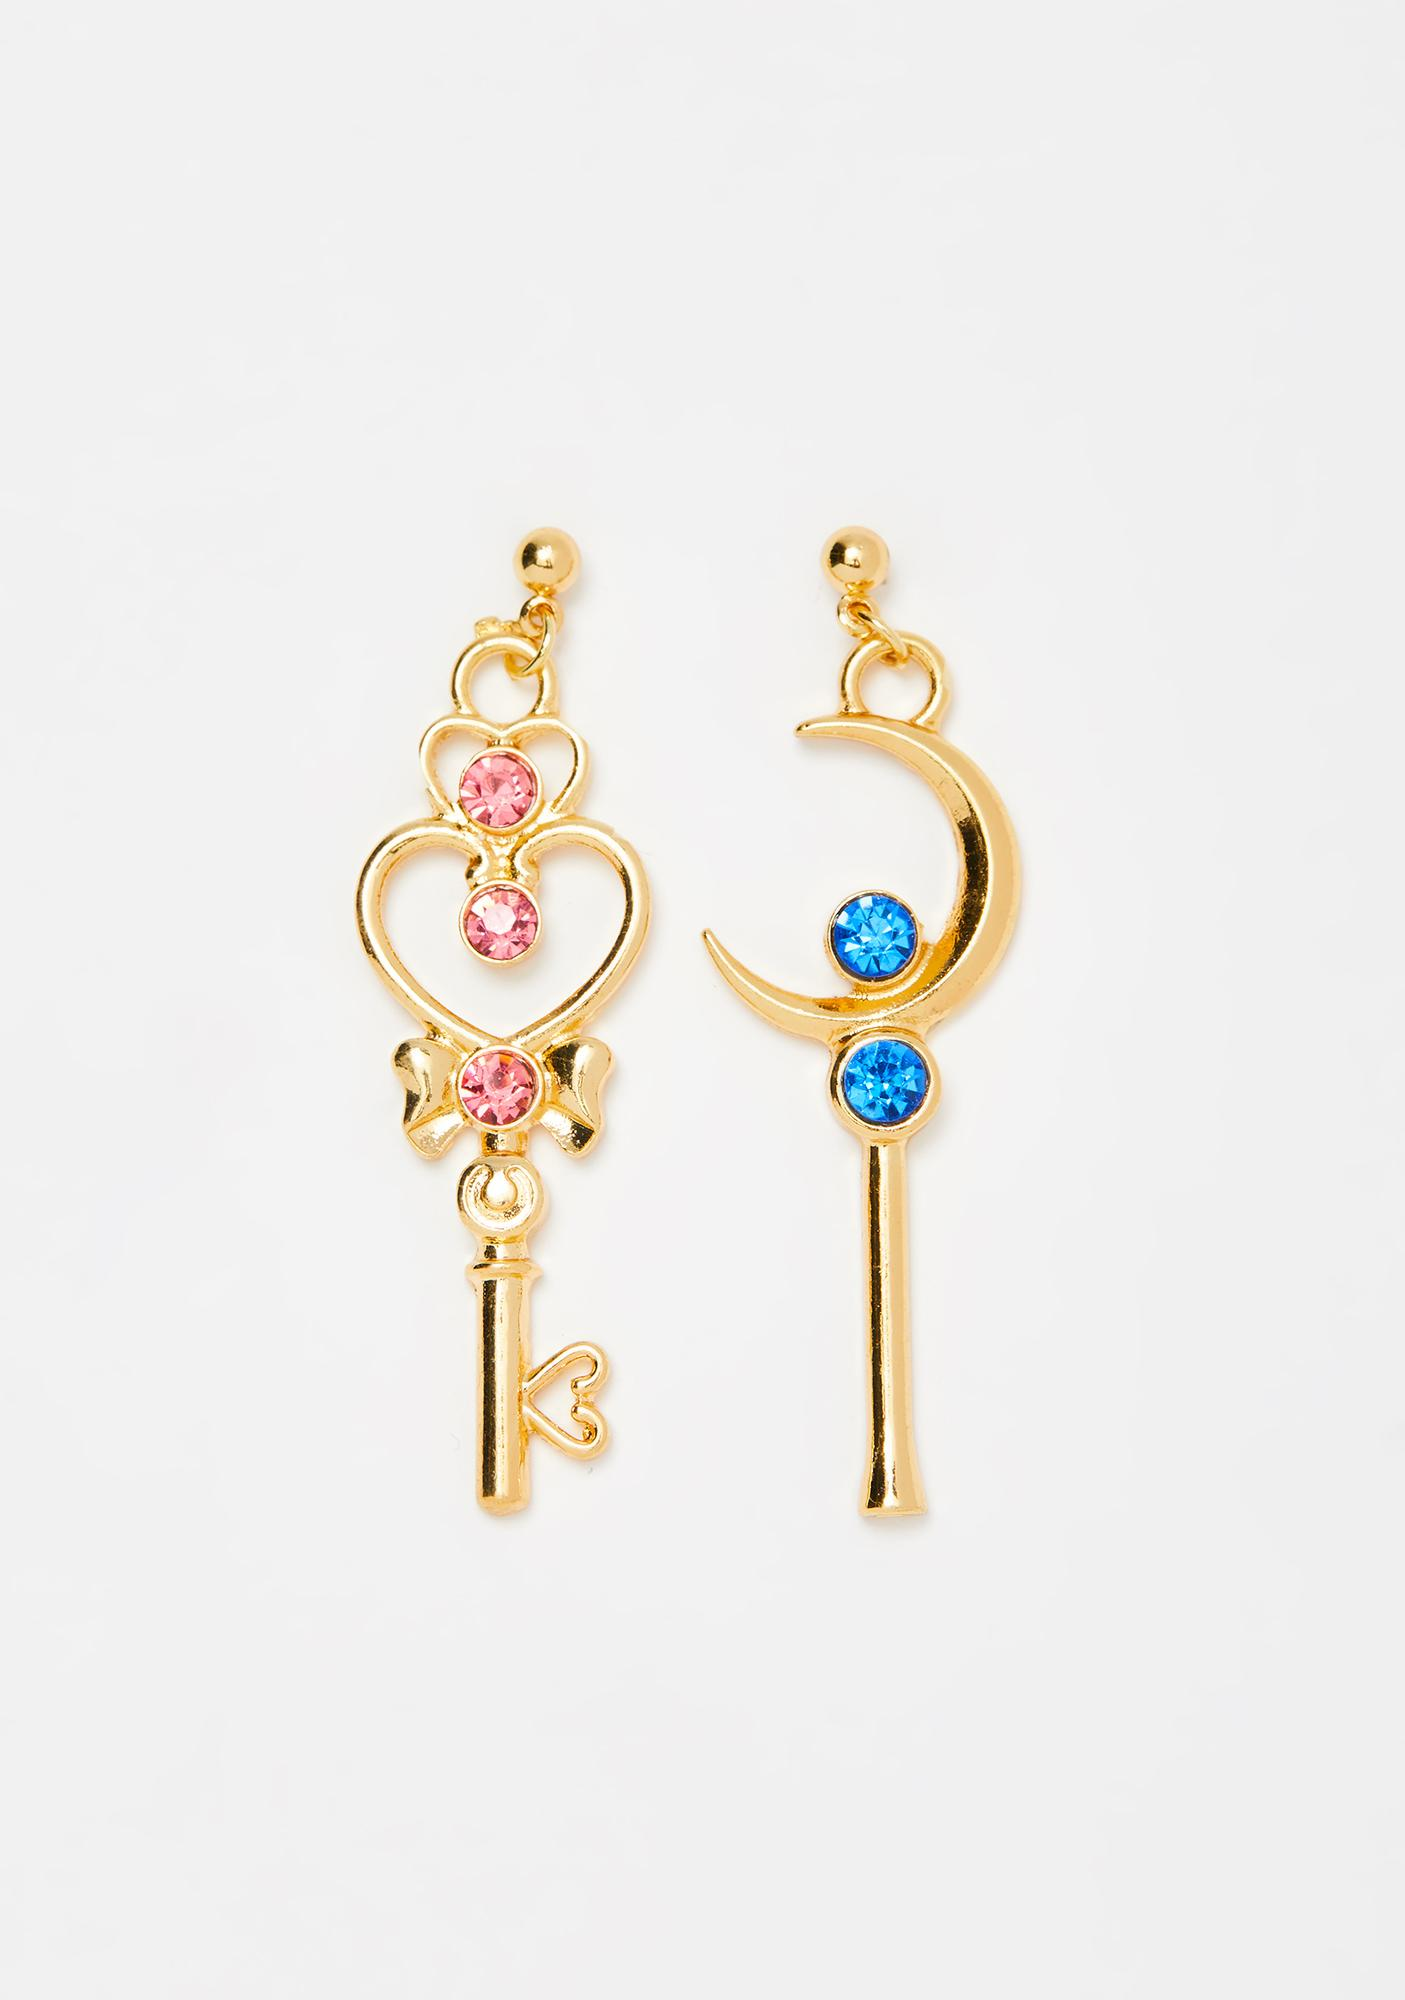 Girl Of Magic Wand Earrings